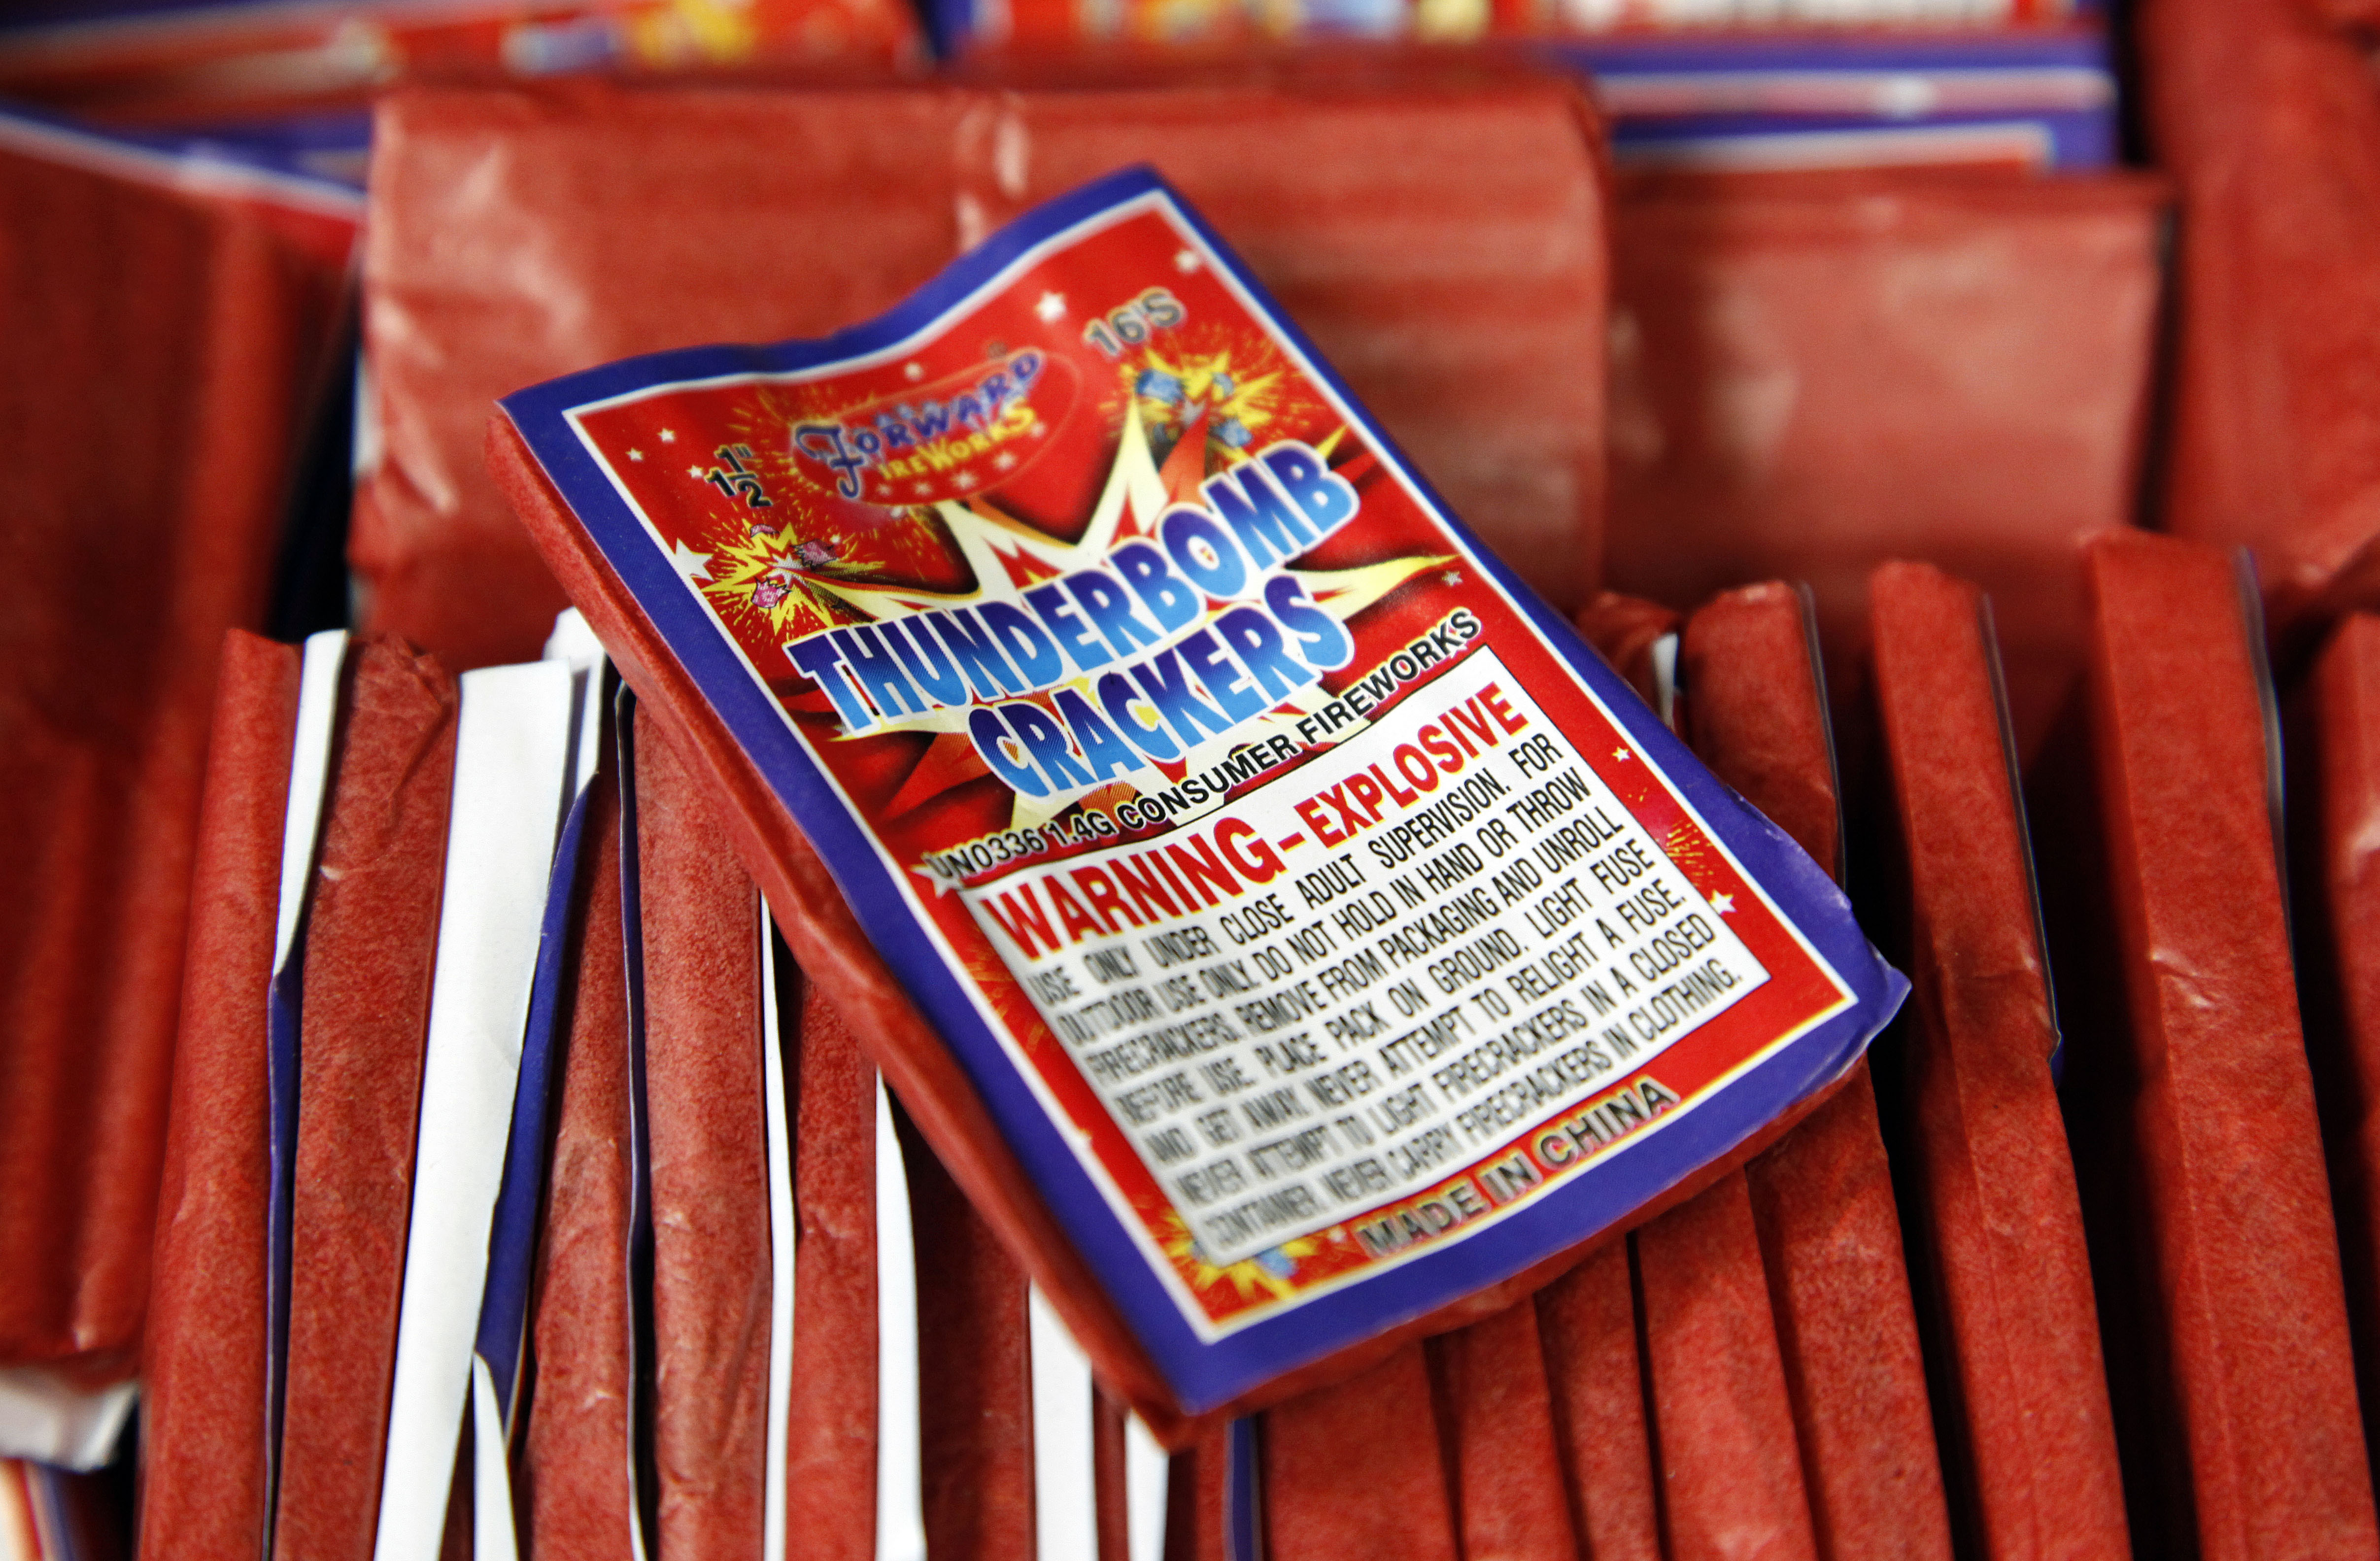 A pack of firecrackers is shown at Southgate Fireworks in Southgate, Mich., on May 24, 2012. (Paul Sancya/Associated Press)